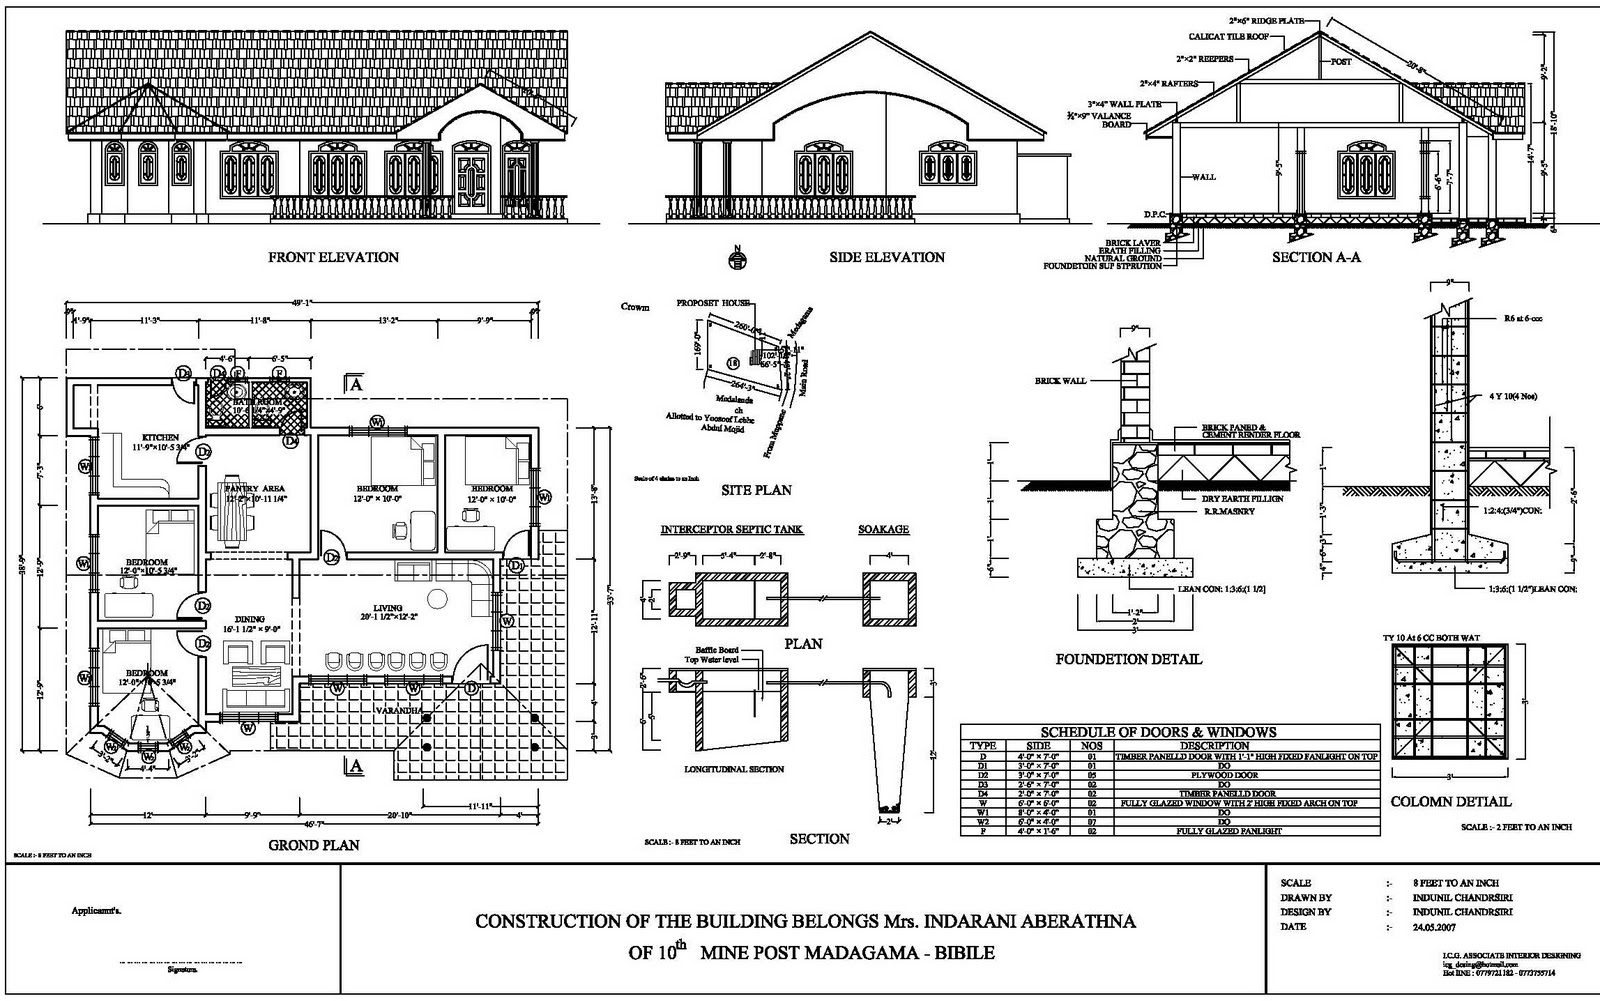 Draw House Plans Indoor Spaces besides  also Double Story Low Cost House Plans moreover File Typical Dogtrot Floorplan also 4B2S 3601 4500. on double story house plans